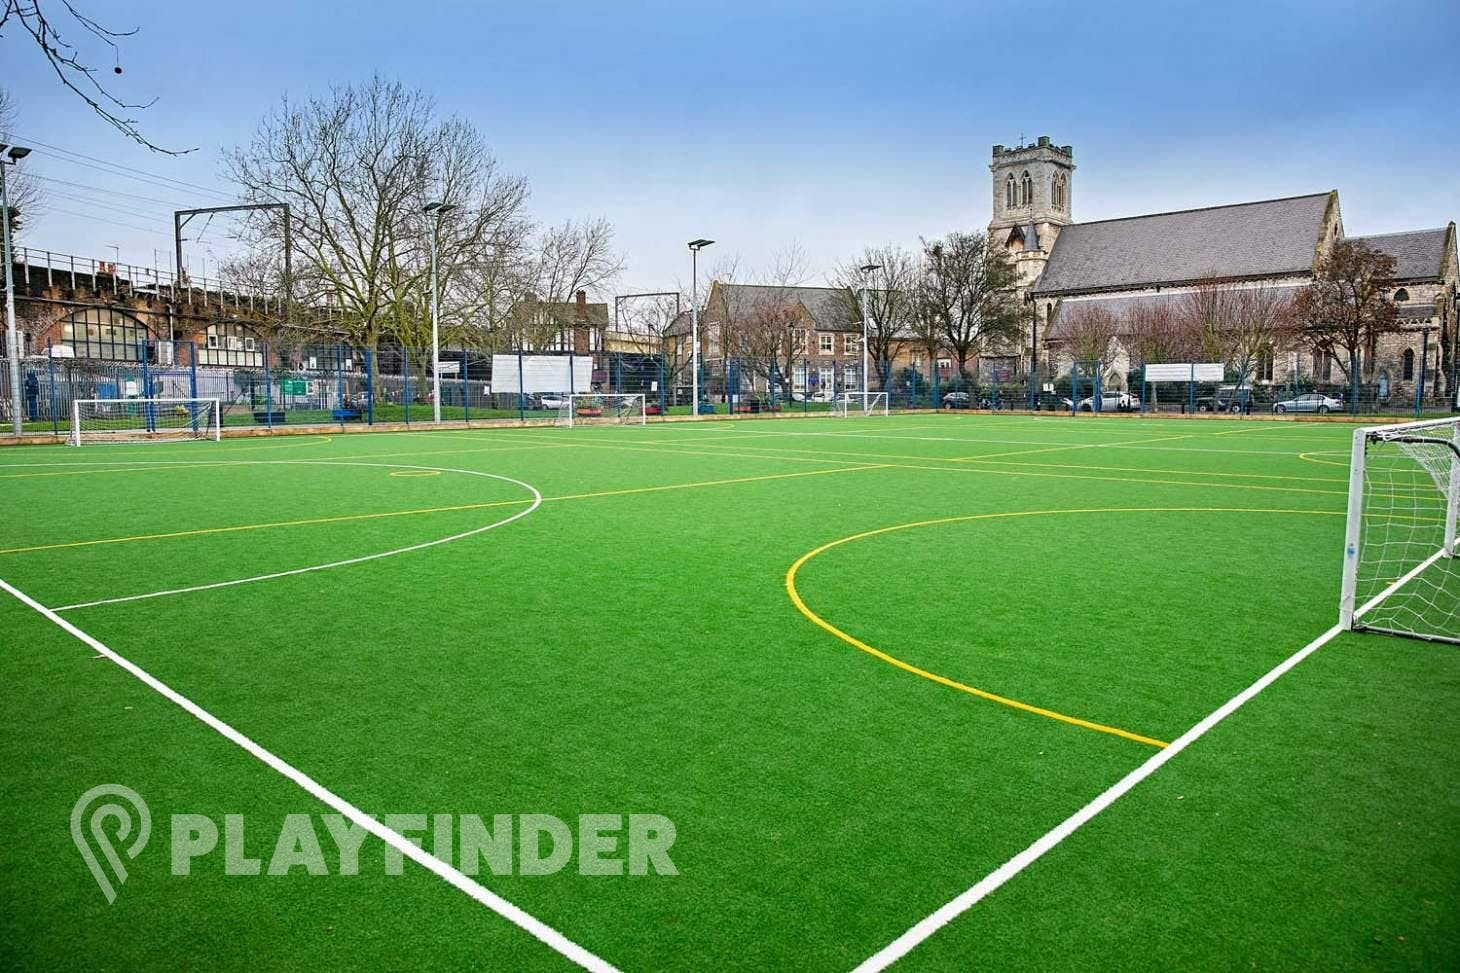 Castlehaven Sports Pitch 9 a side | Astroturf football pitch